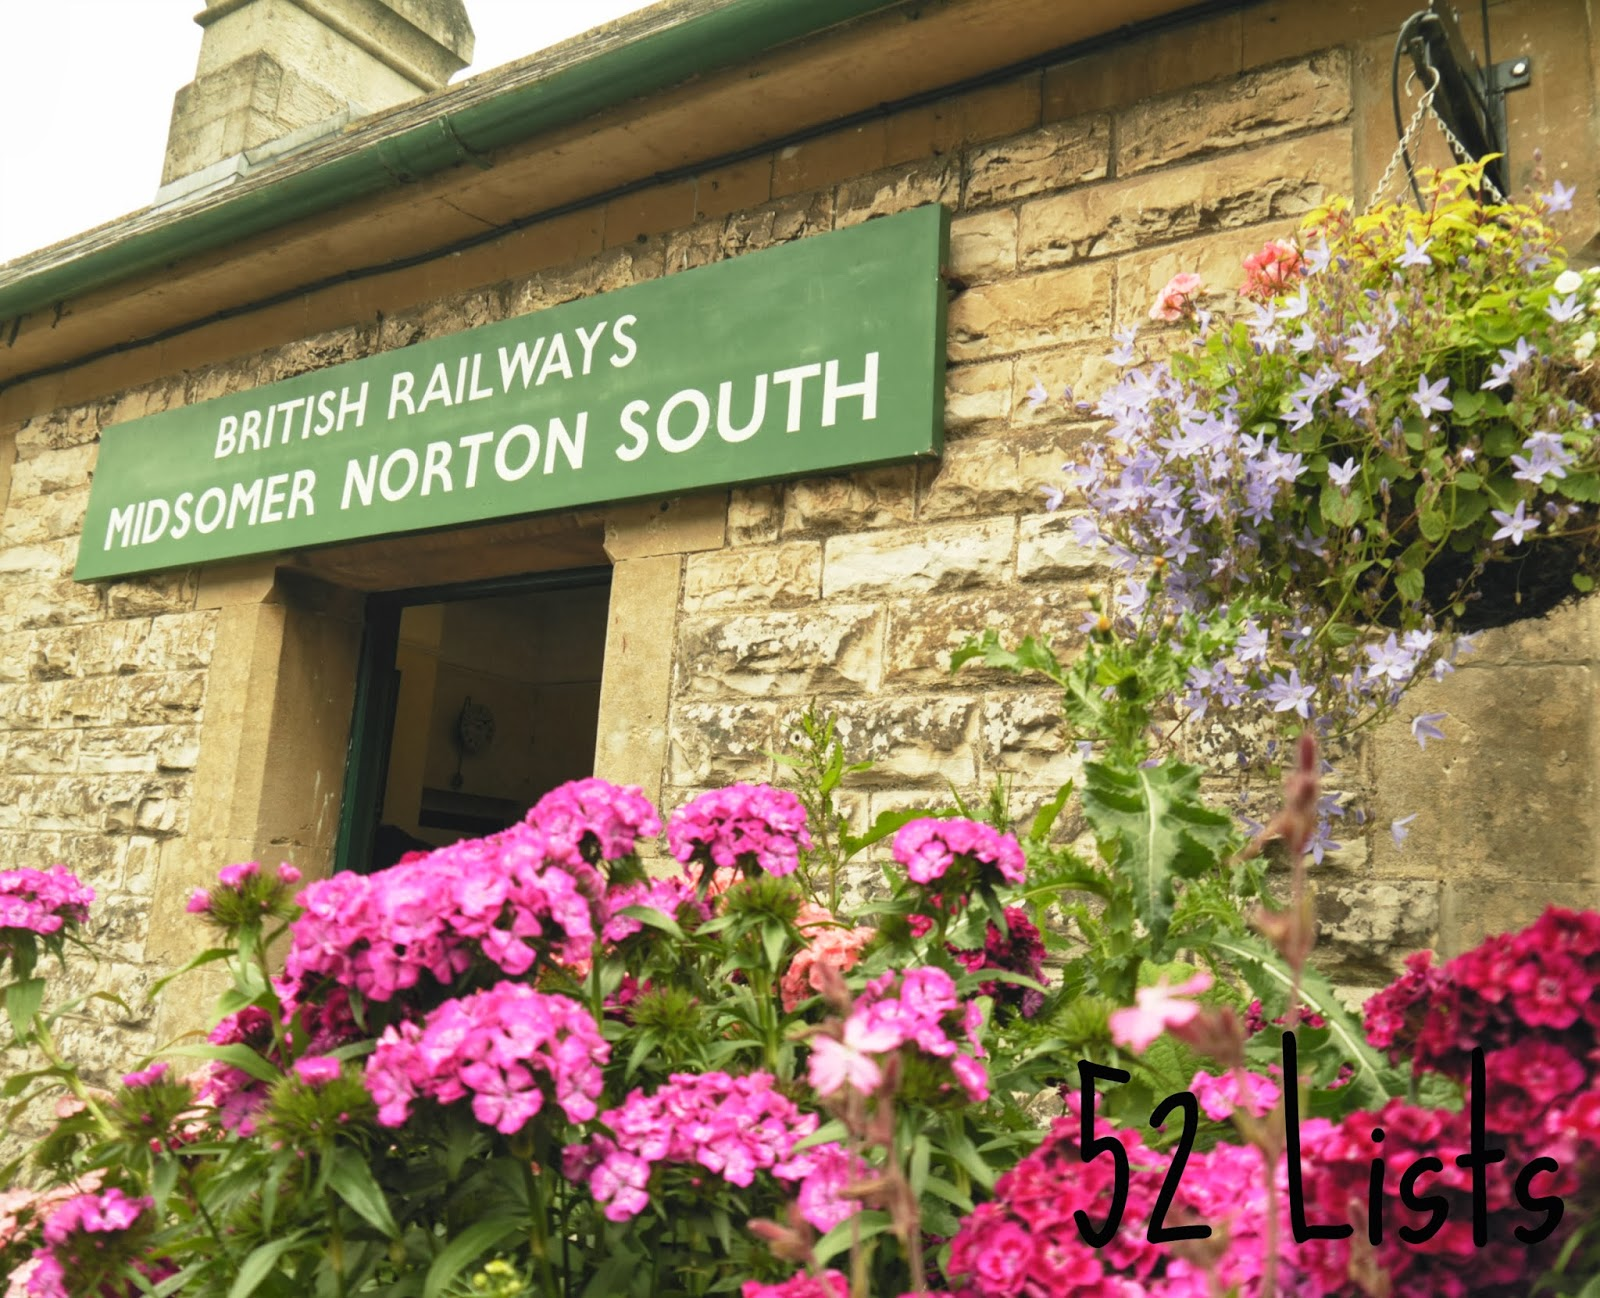 Midsomer Norton South Station